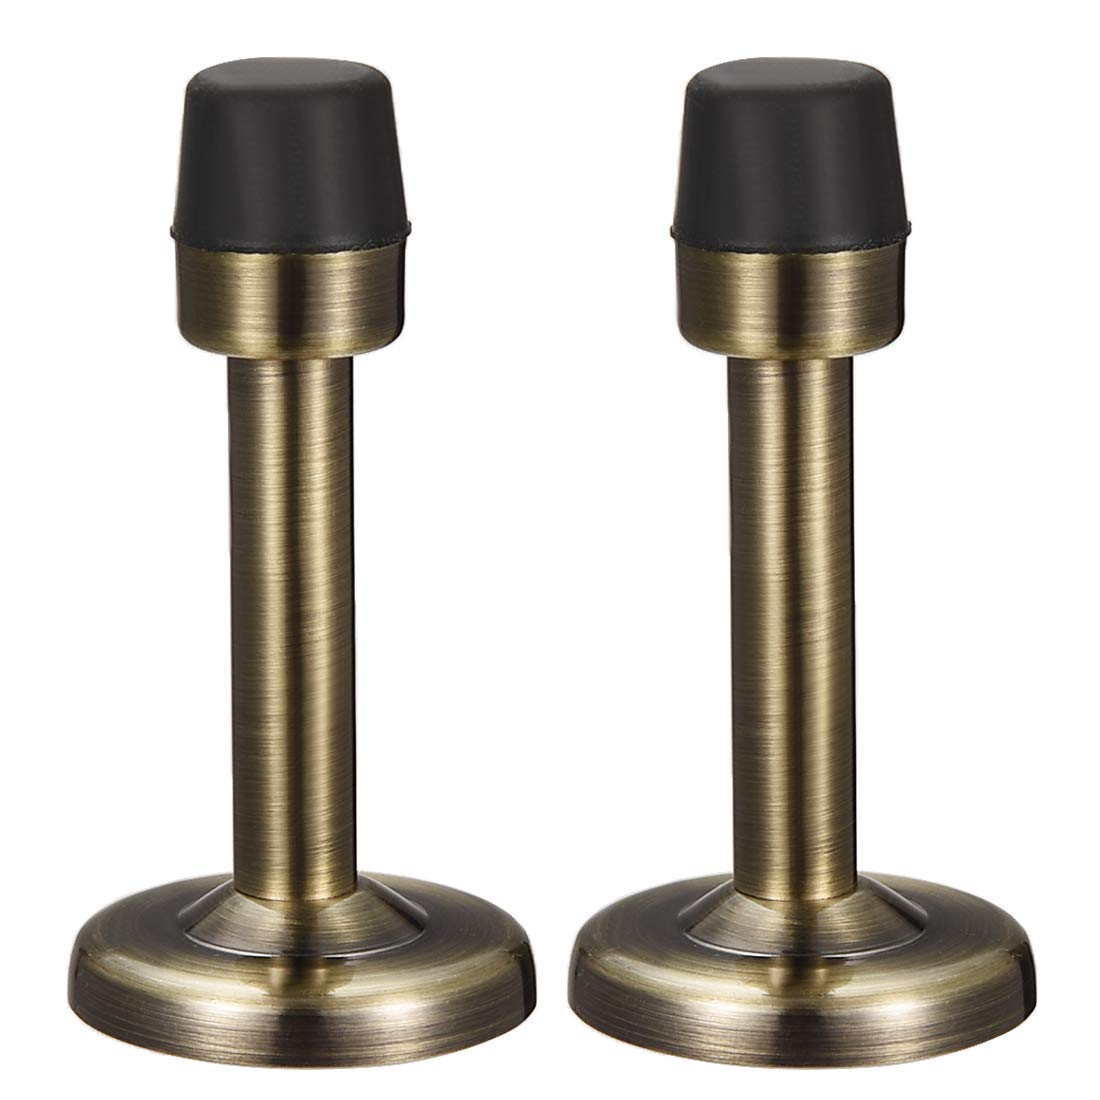 uxcell Door Stopper Stop Bumper Wall Protector Sound Dampening Wall Mount w Rubber Tip Bronze Tone 2pcs